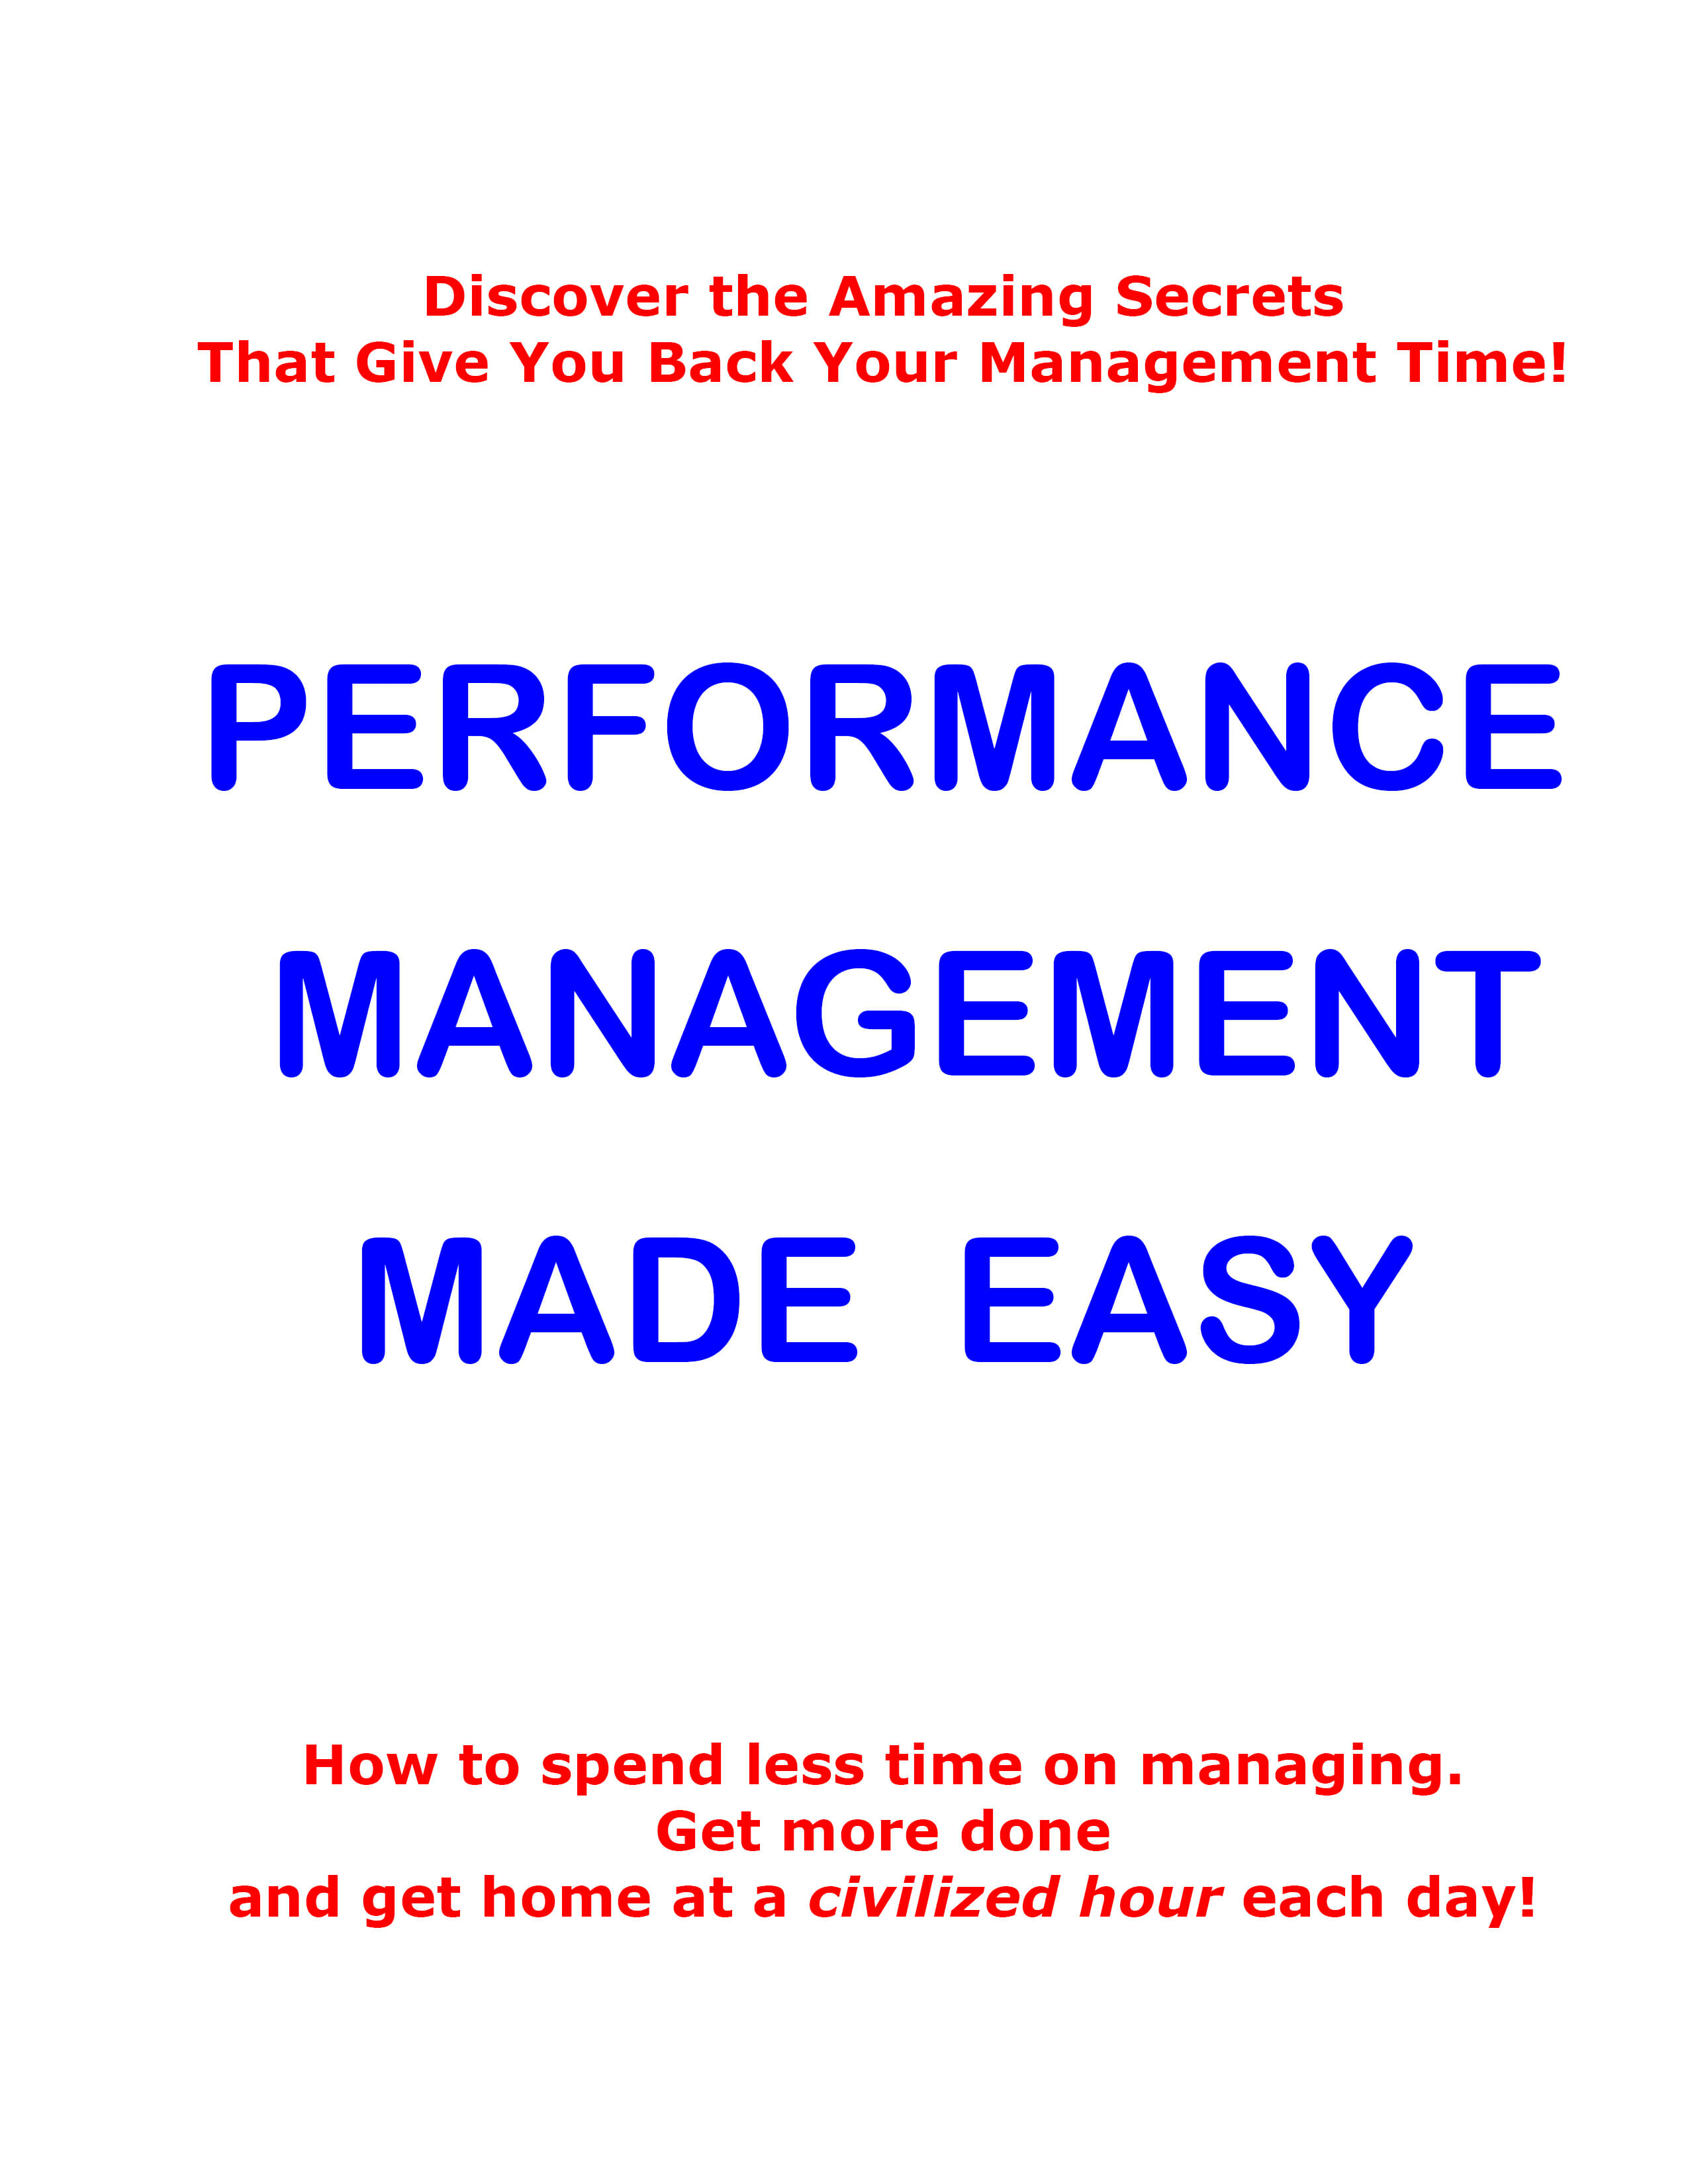 Performance Management Made Easy Image